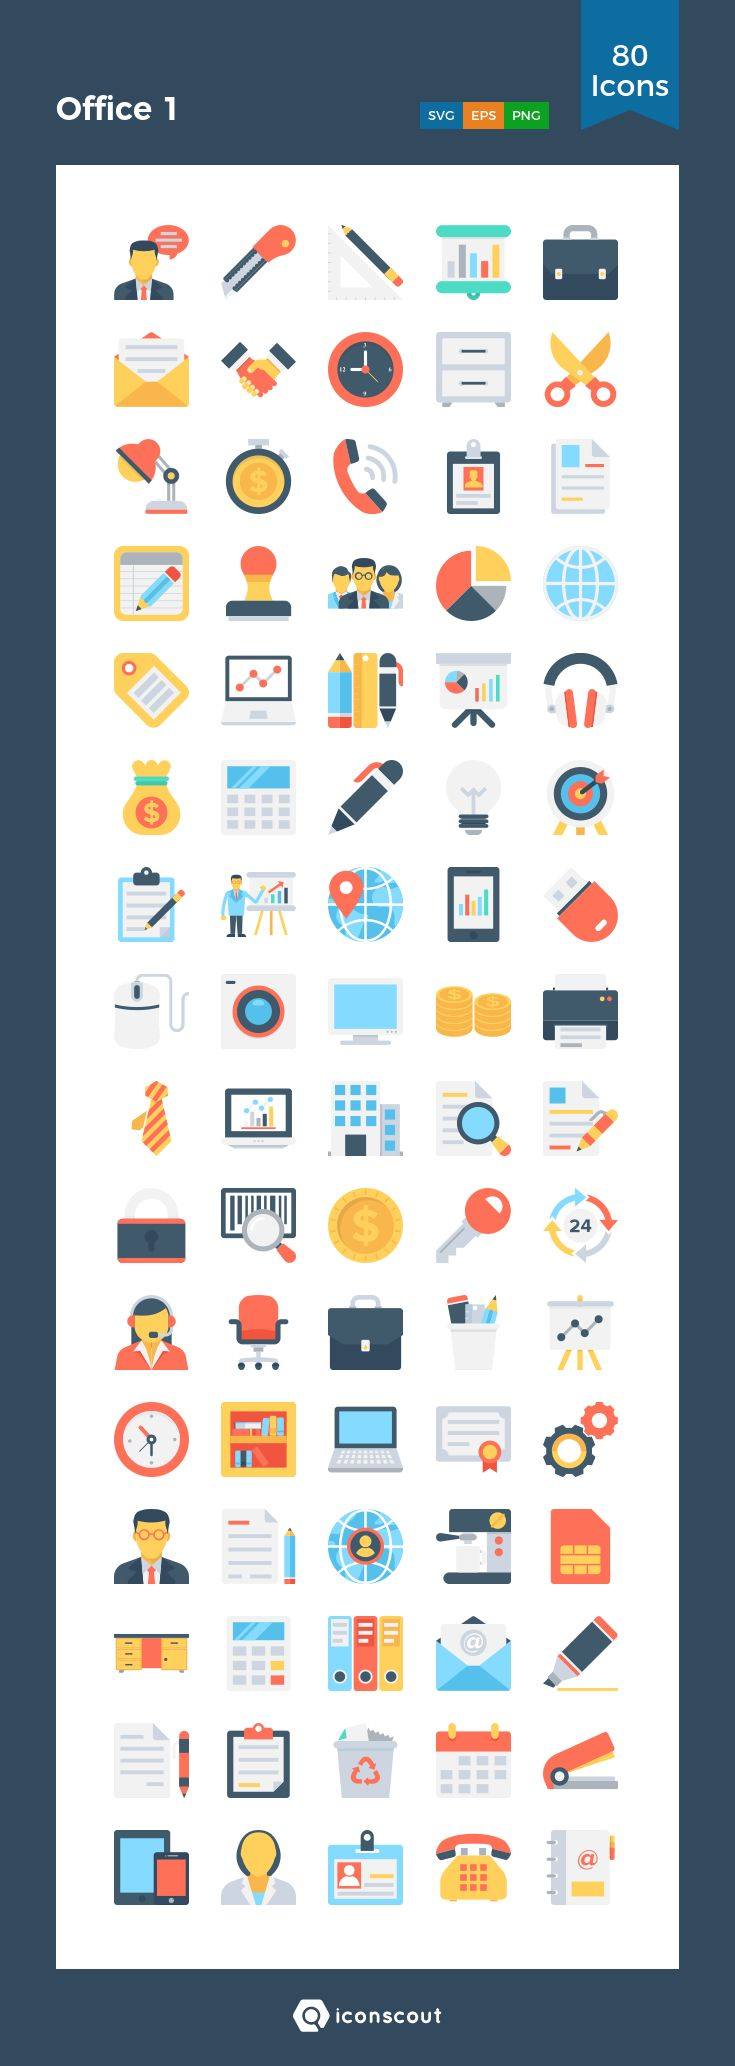 Office 1  Icon Pack - 80 Flat Icons